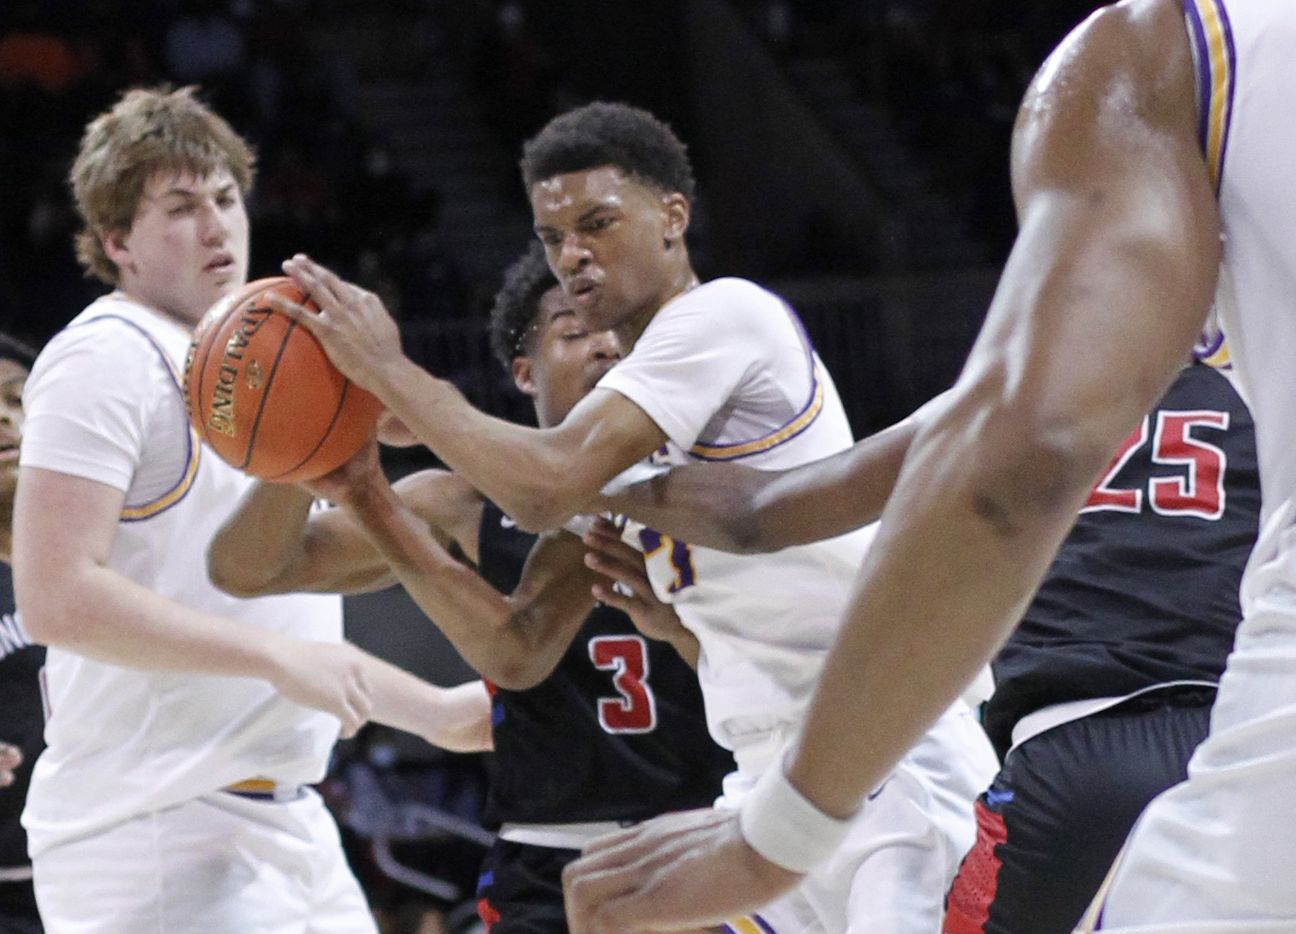 Richardson guard Rylan Griffen (3), center,  grimaces as he dribbles through congestion during first half action against Duncanville. Griffen was called for traveling on the play. The two teams played their Class 6A state semifinal boys basketball playoff game at Moody Coliseum on the campus of SMU in Dallas on March 9, 2021. (Steve Hamm/ Special Contributor)